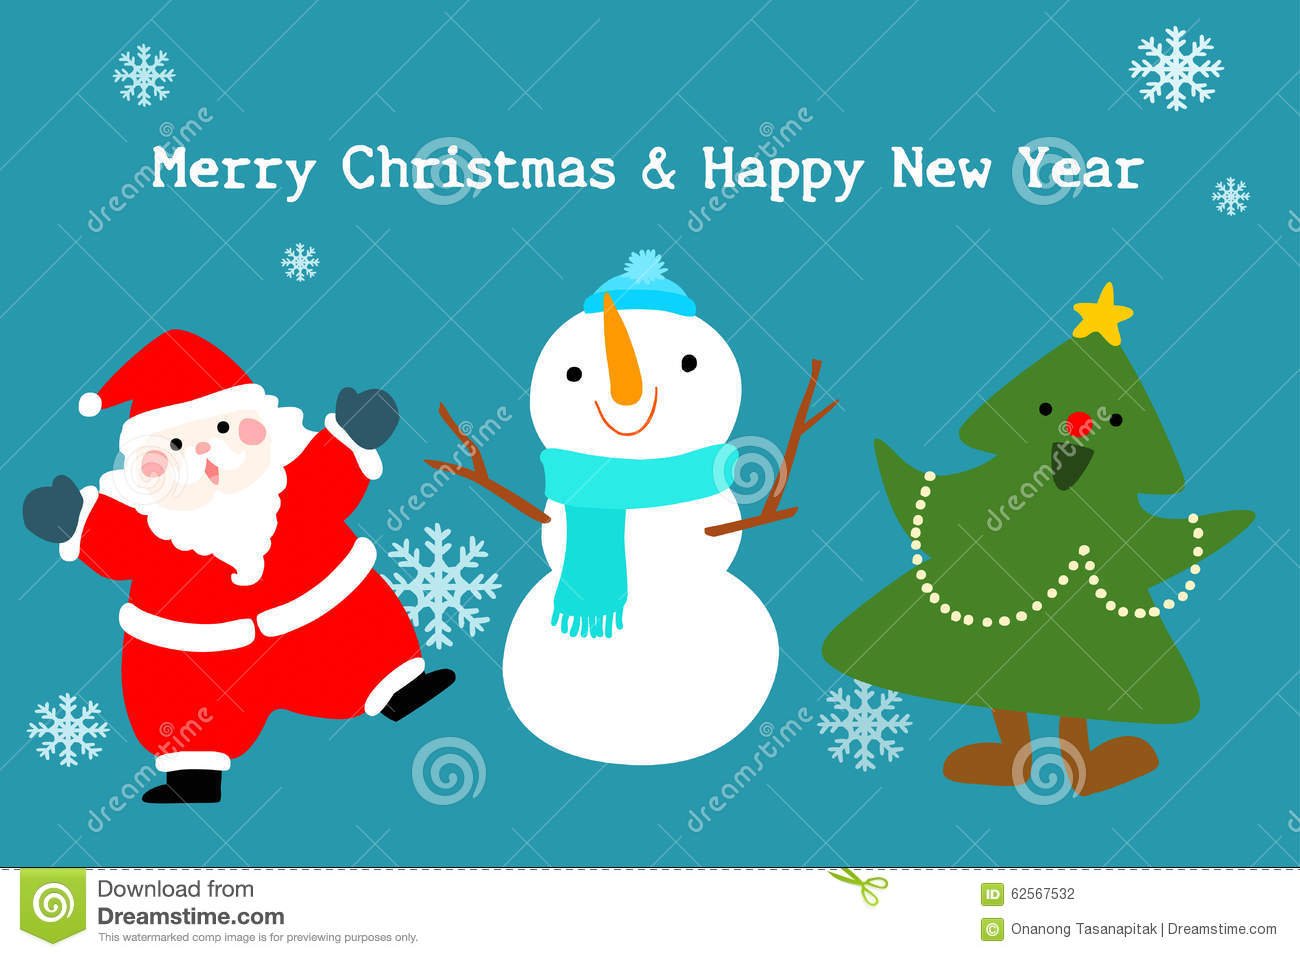 Merry Christmas And Happy New Year Cute Card Stock Vector ...